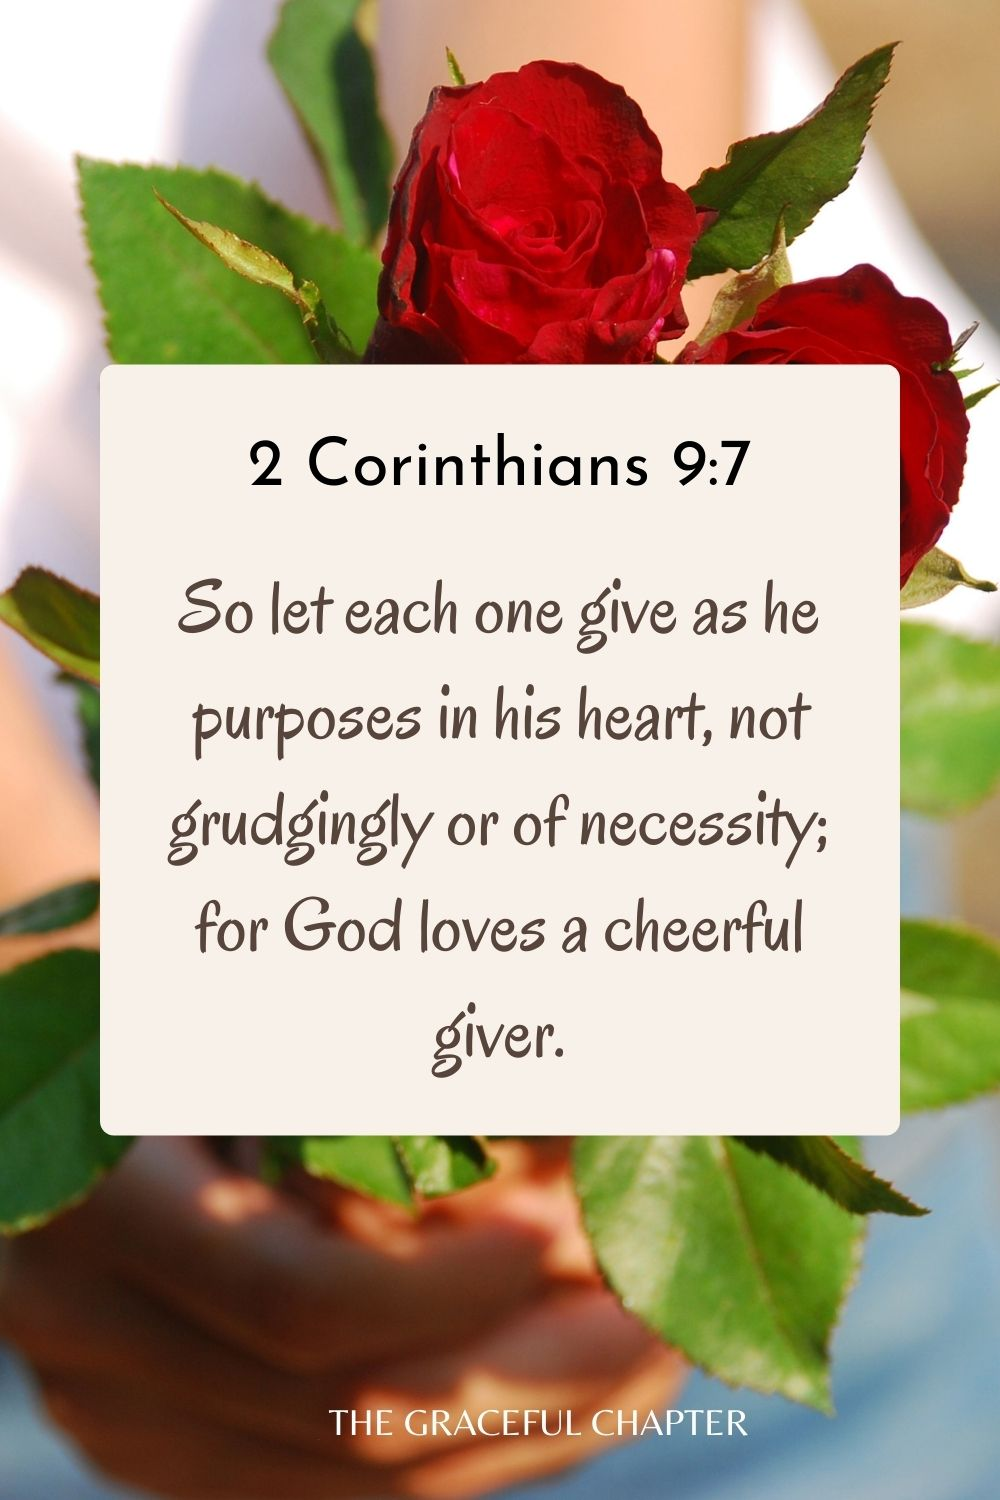 So let each one give as he purposes in his heart, not grudgingly or of necessity; for God loves a cheerful giver. 2 Corinthians 9:7